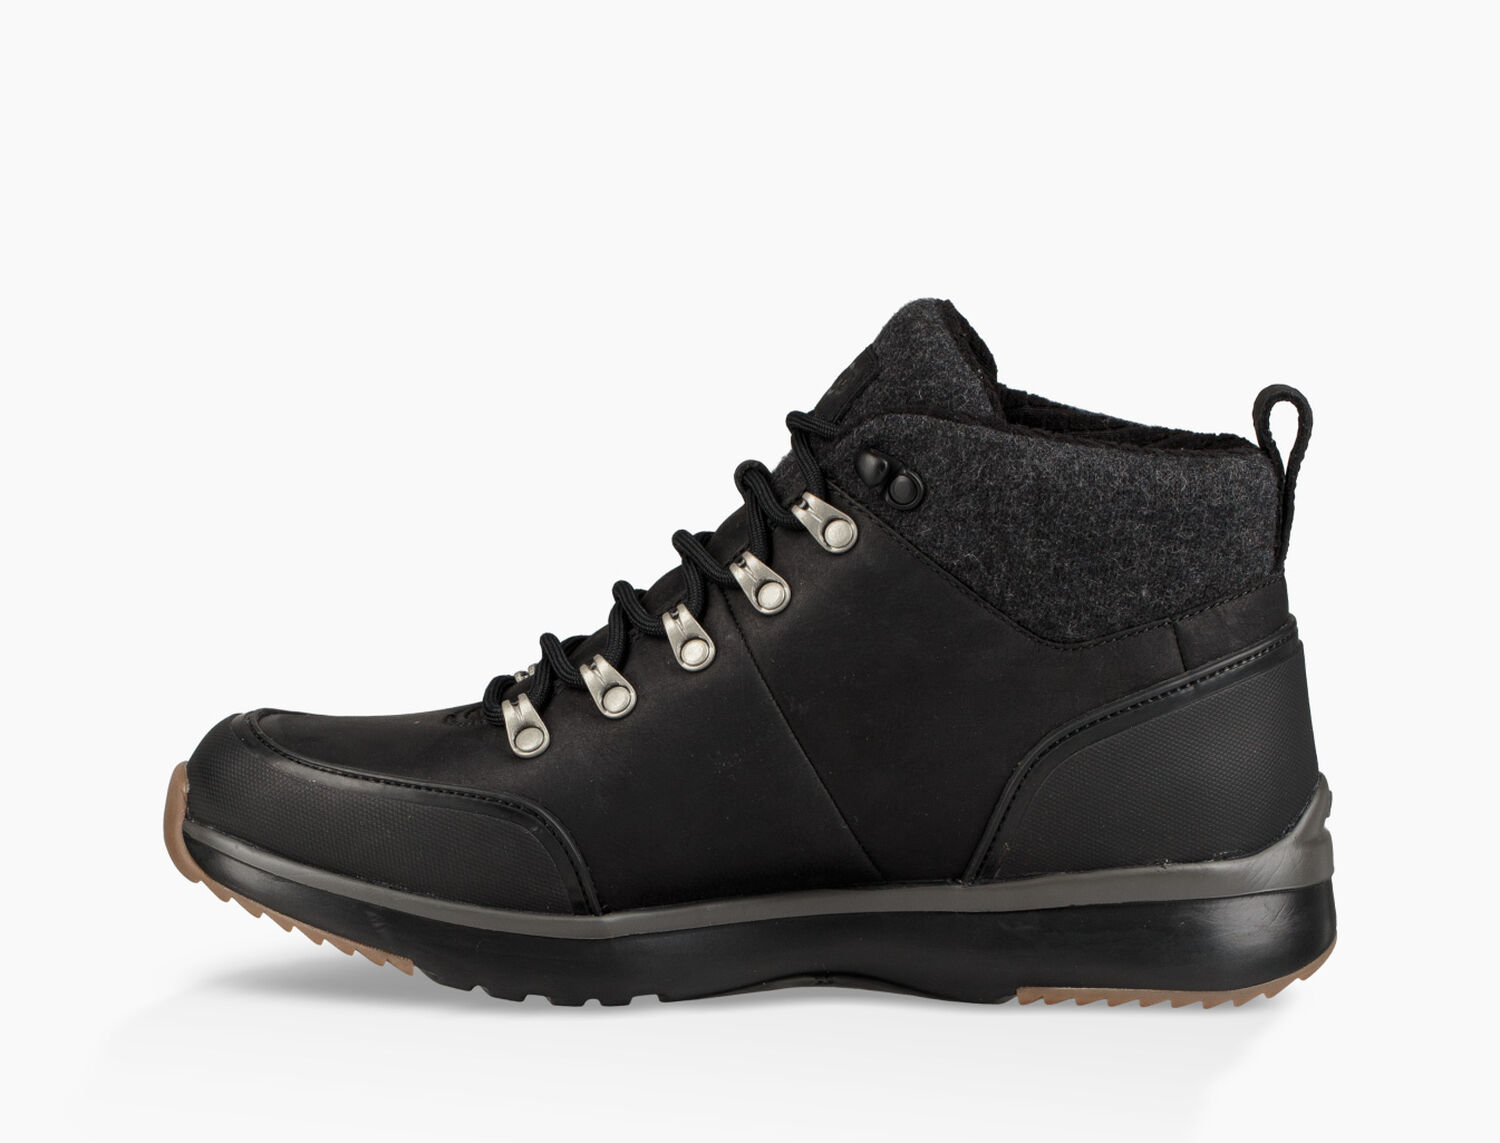 556101de437 Men's Share this product Olivert Boot